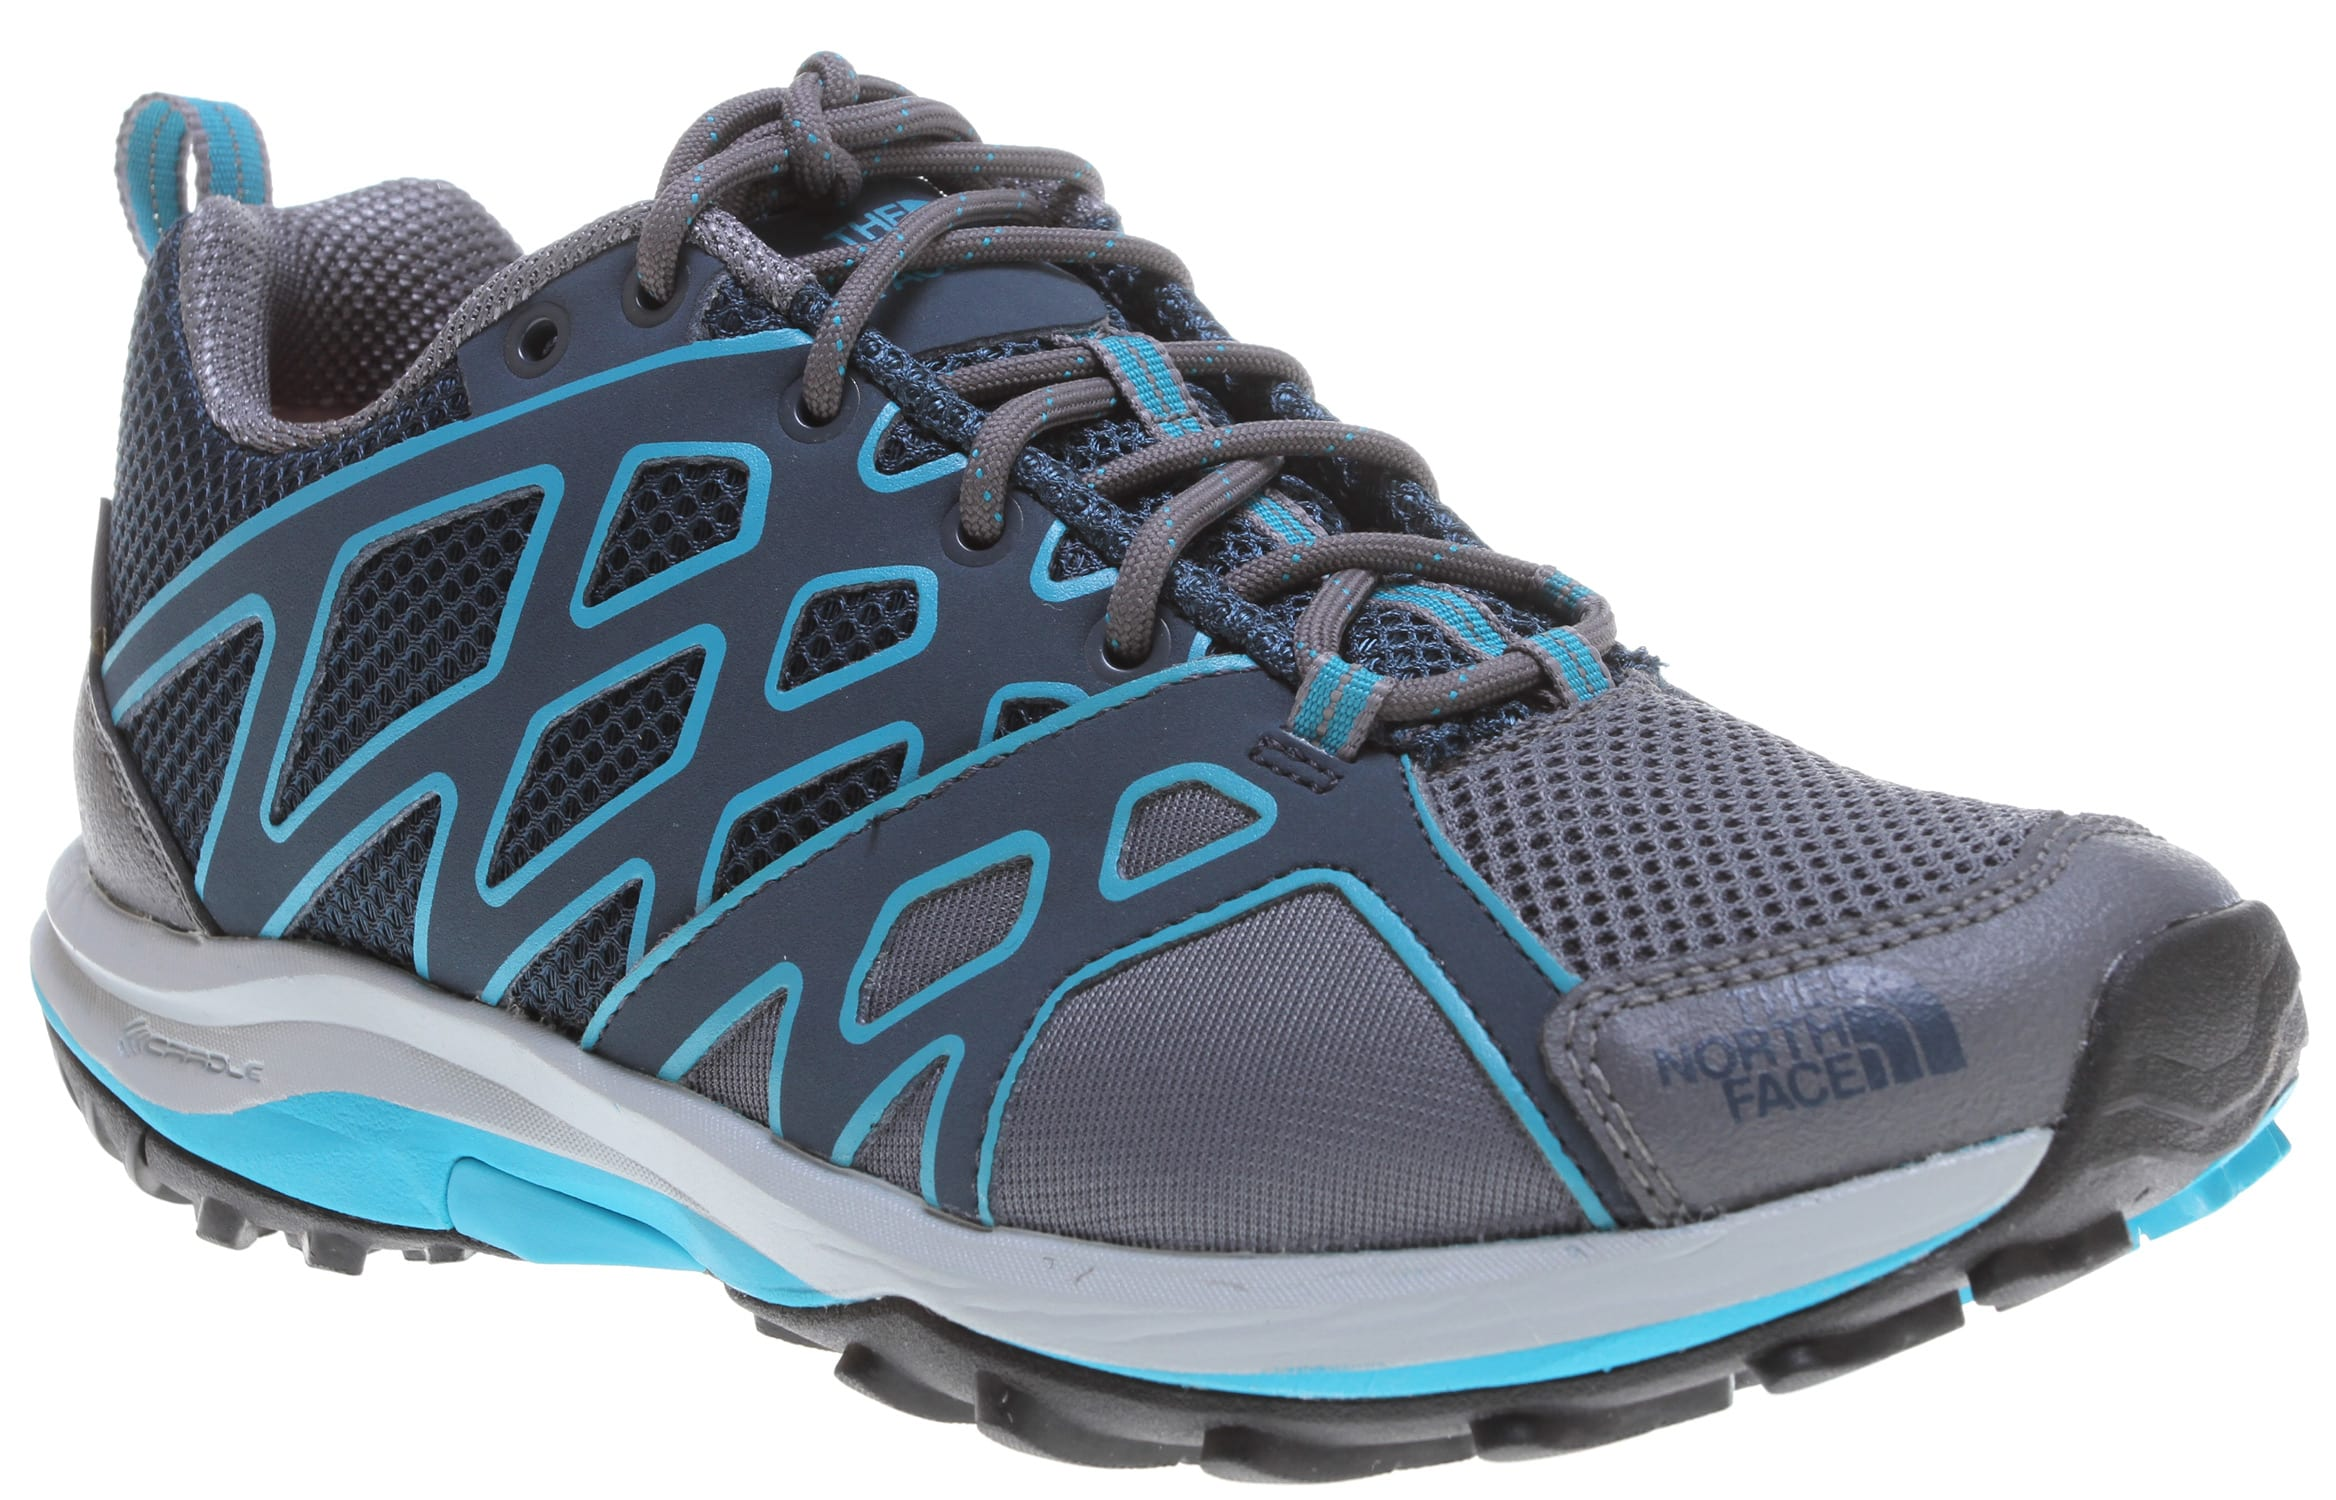 The North Face Hedgehog Guide Gtx Hiking Shoes Womens